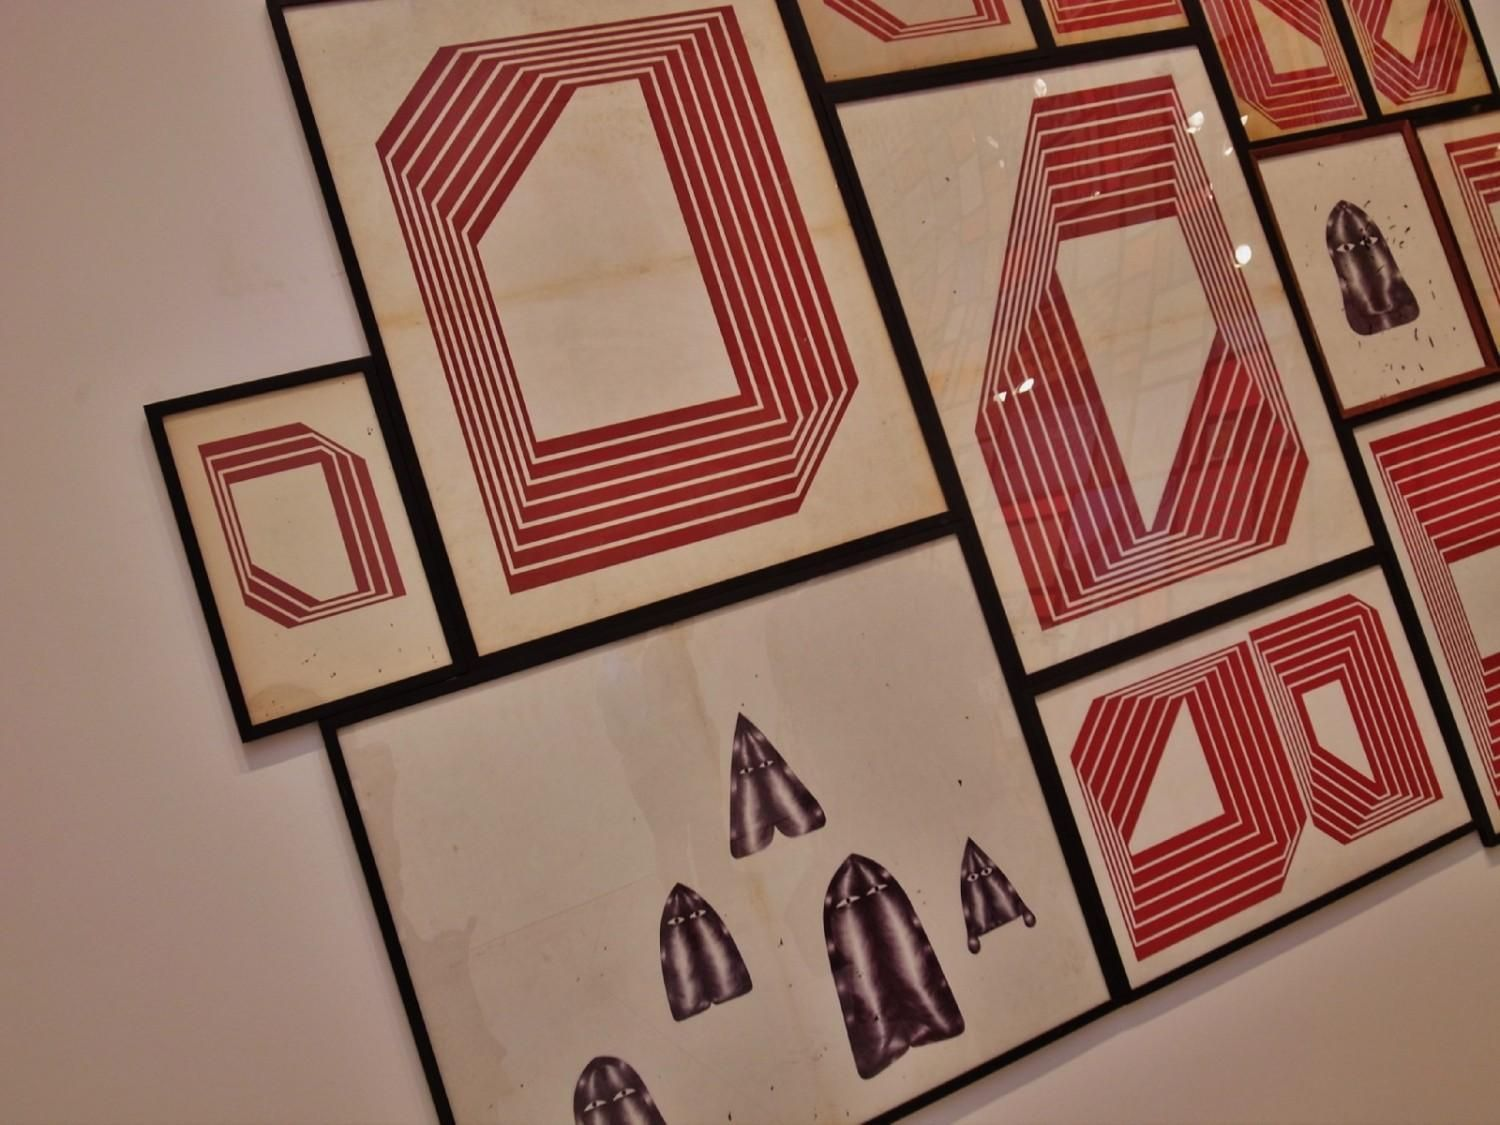 purple DIARY - BARRY MCGEE at Cheim & Read, New York